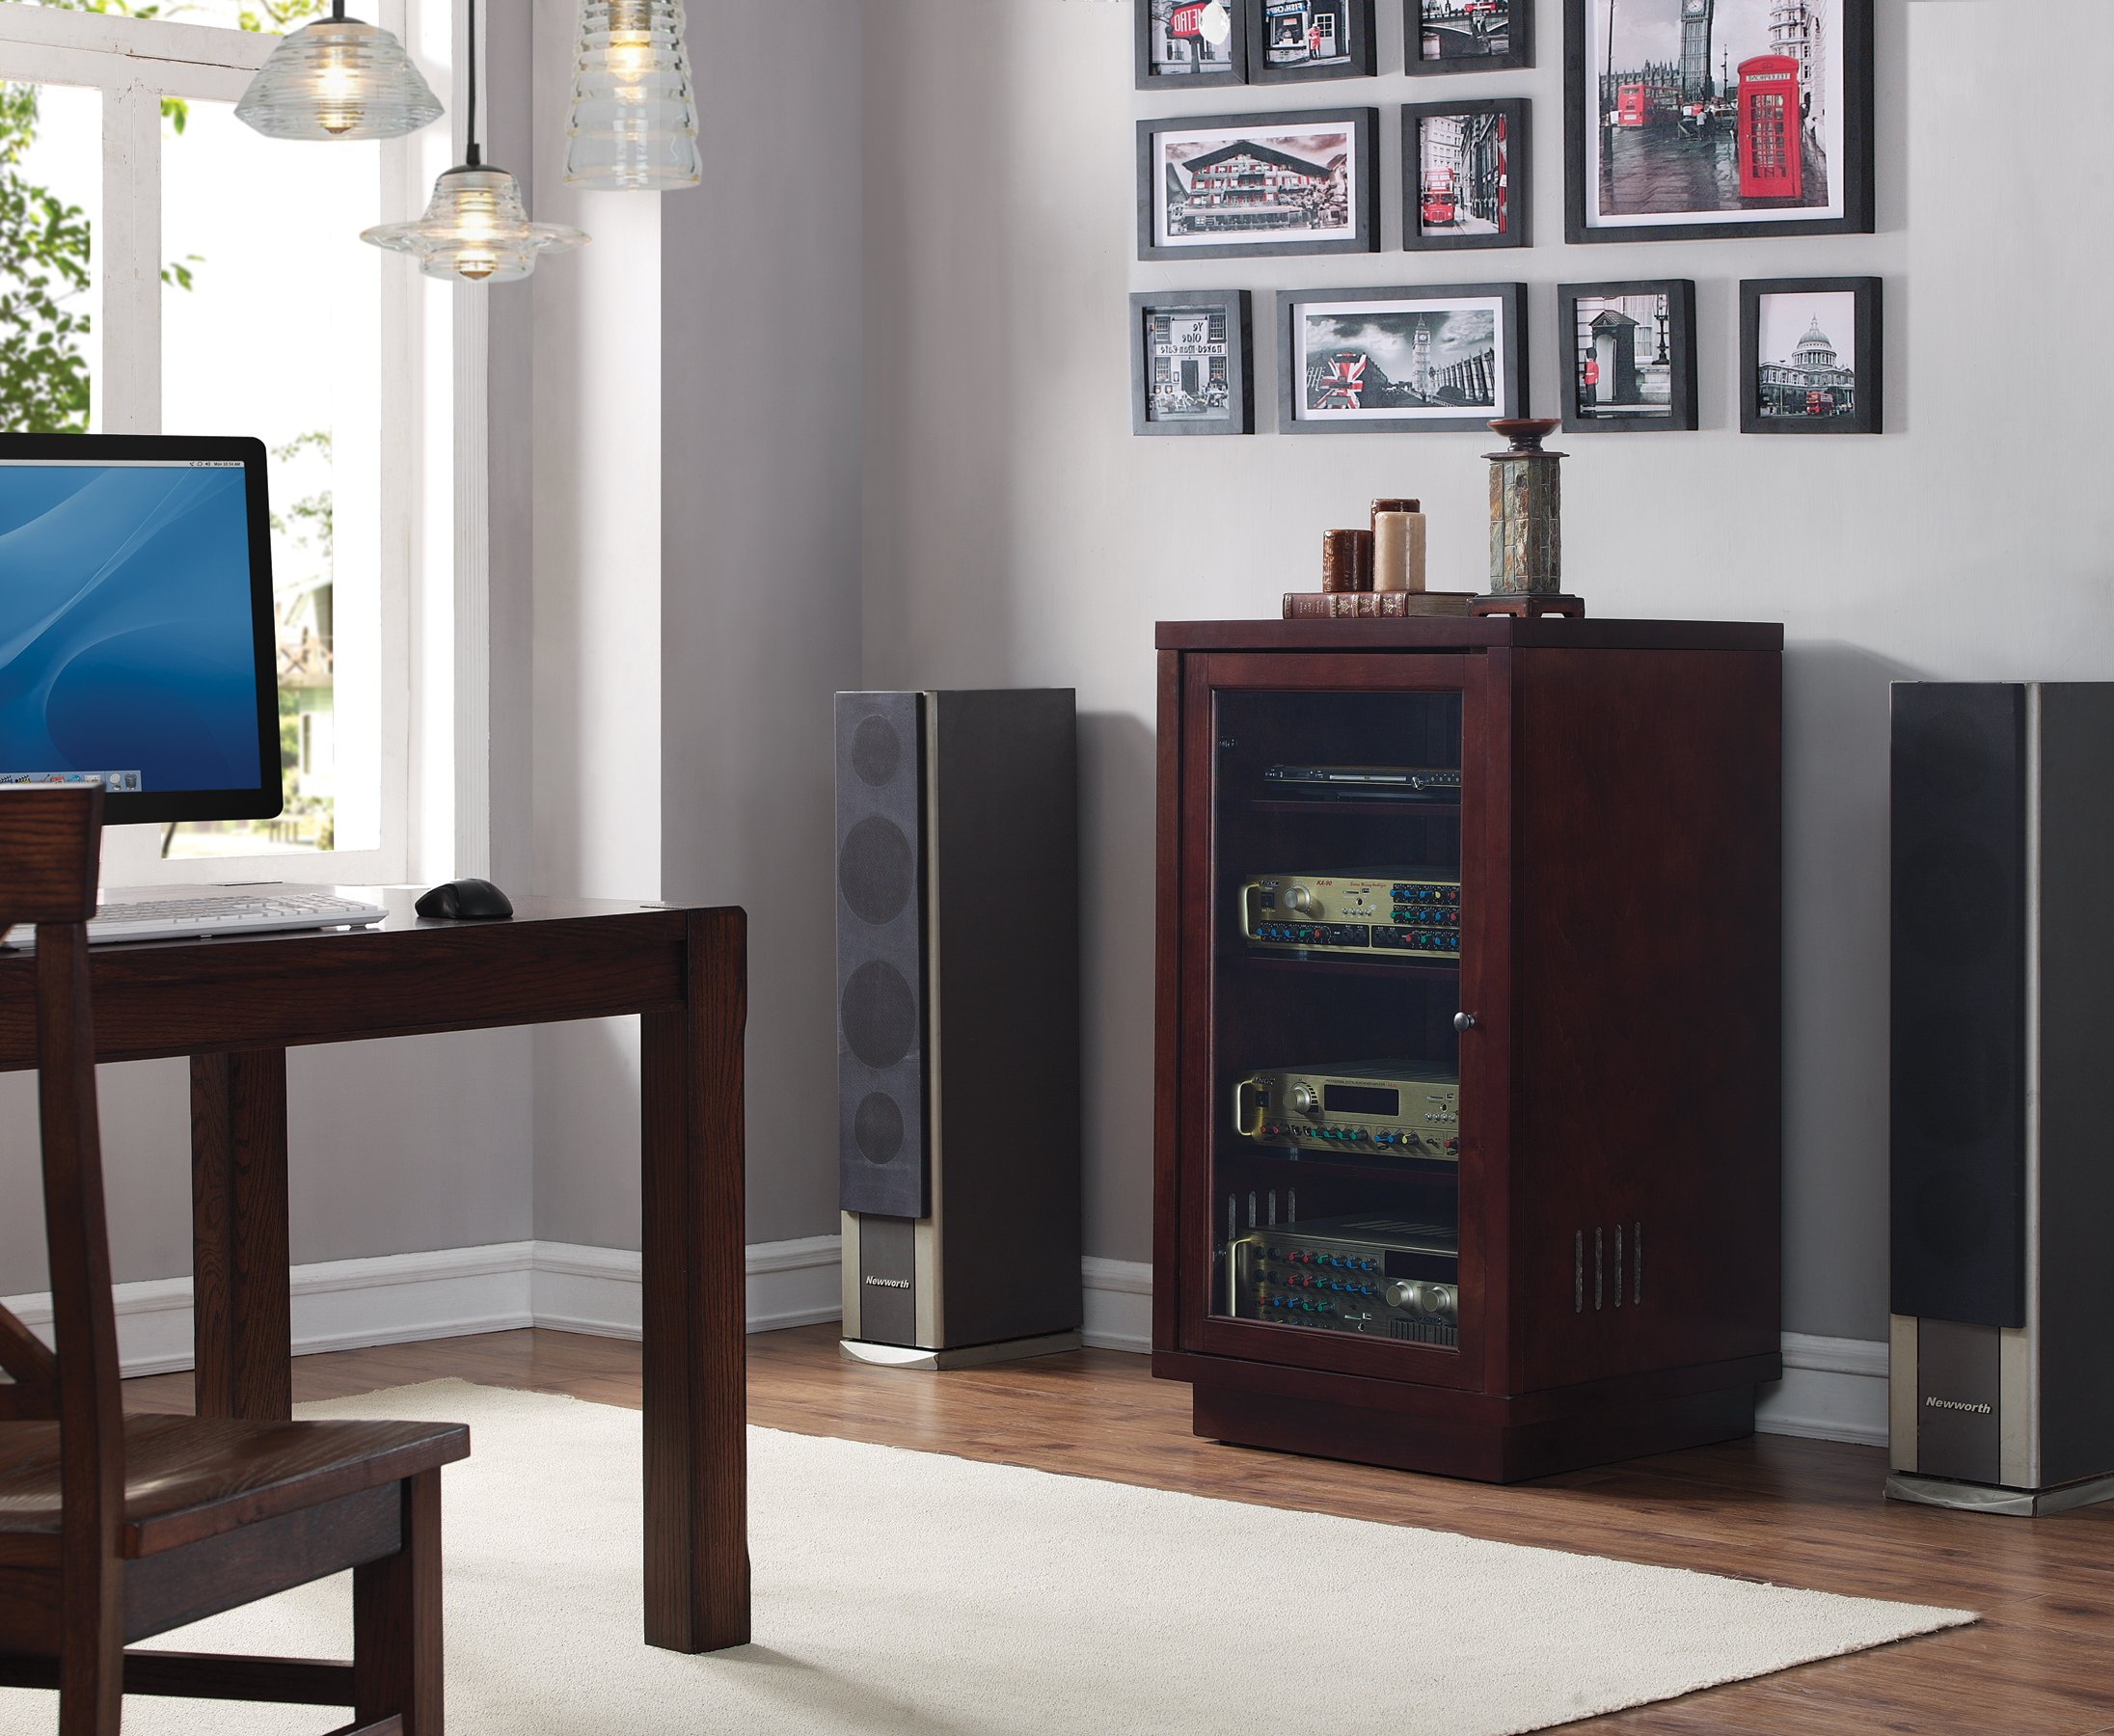 pinterest closet component v pin rooms a video cabinet rack living in audio